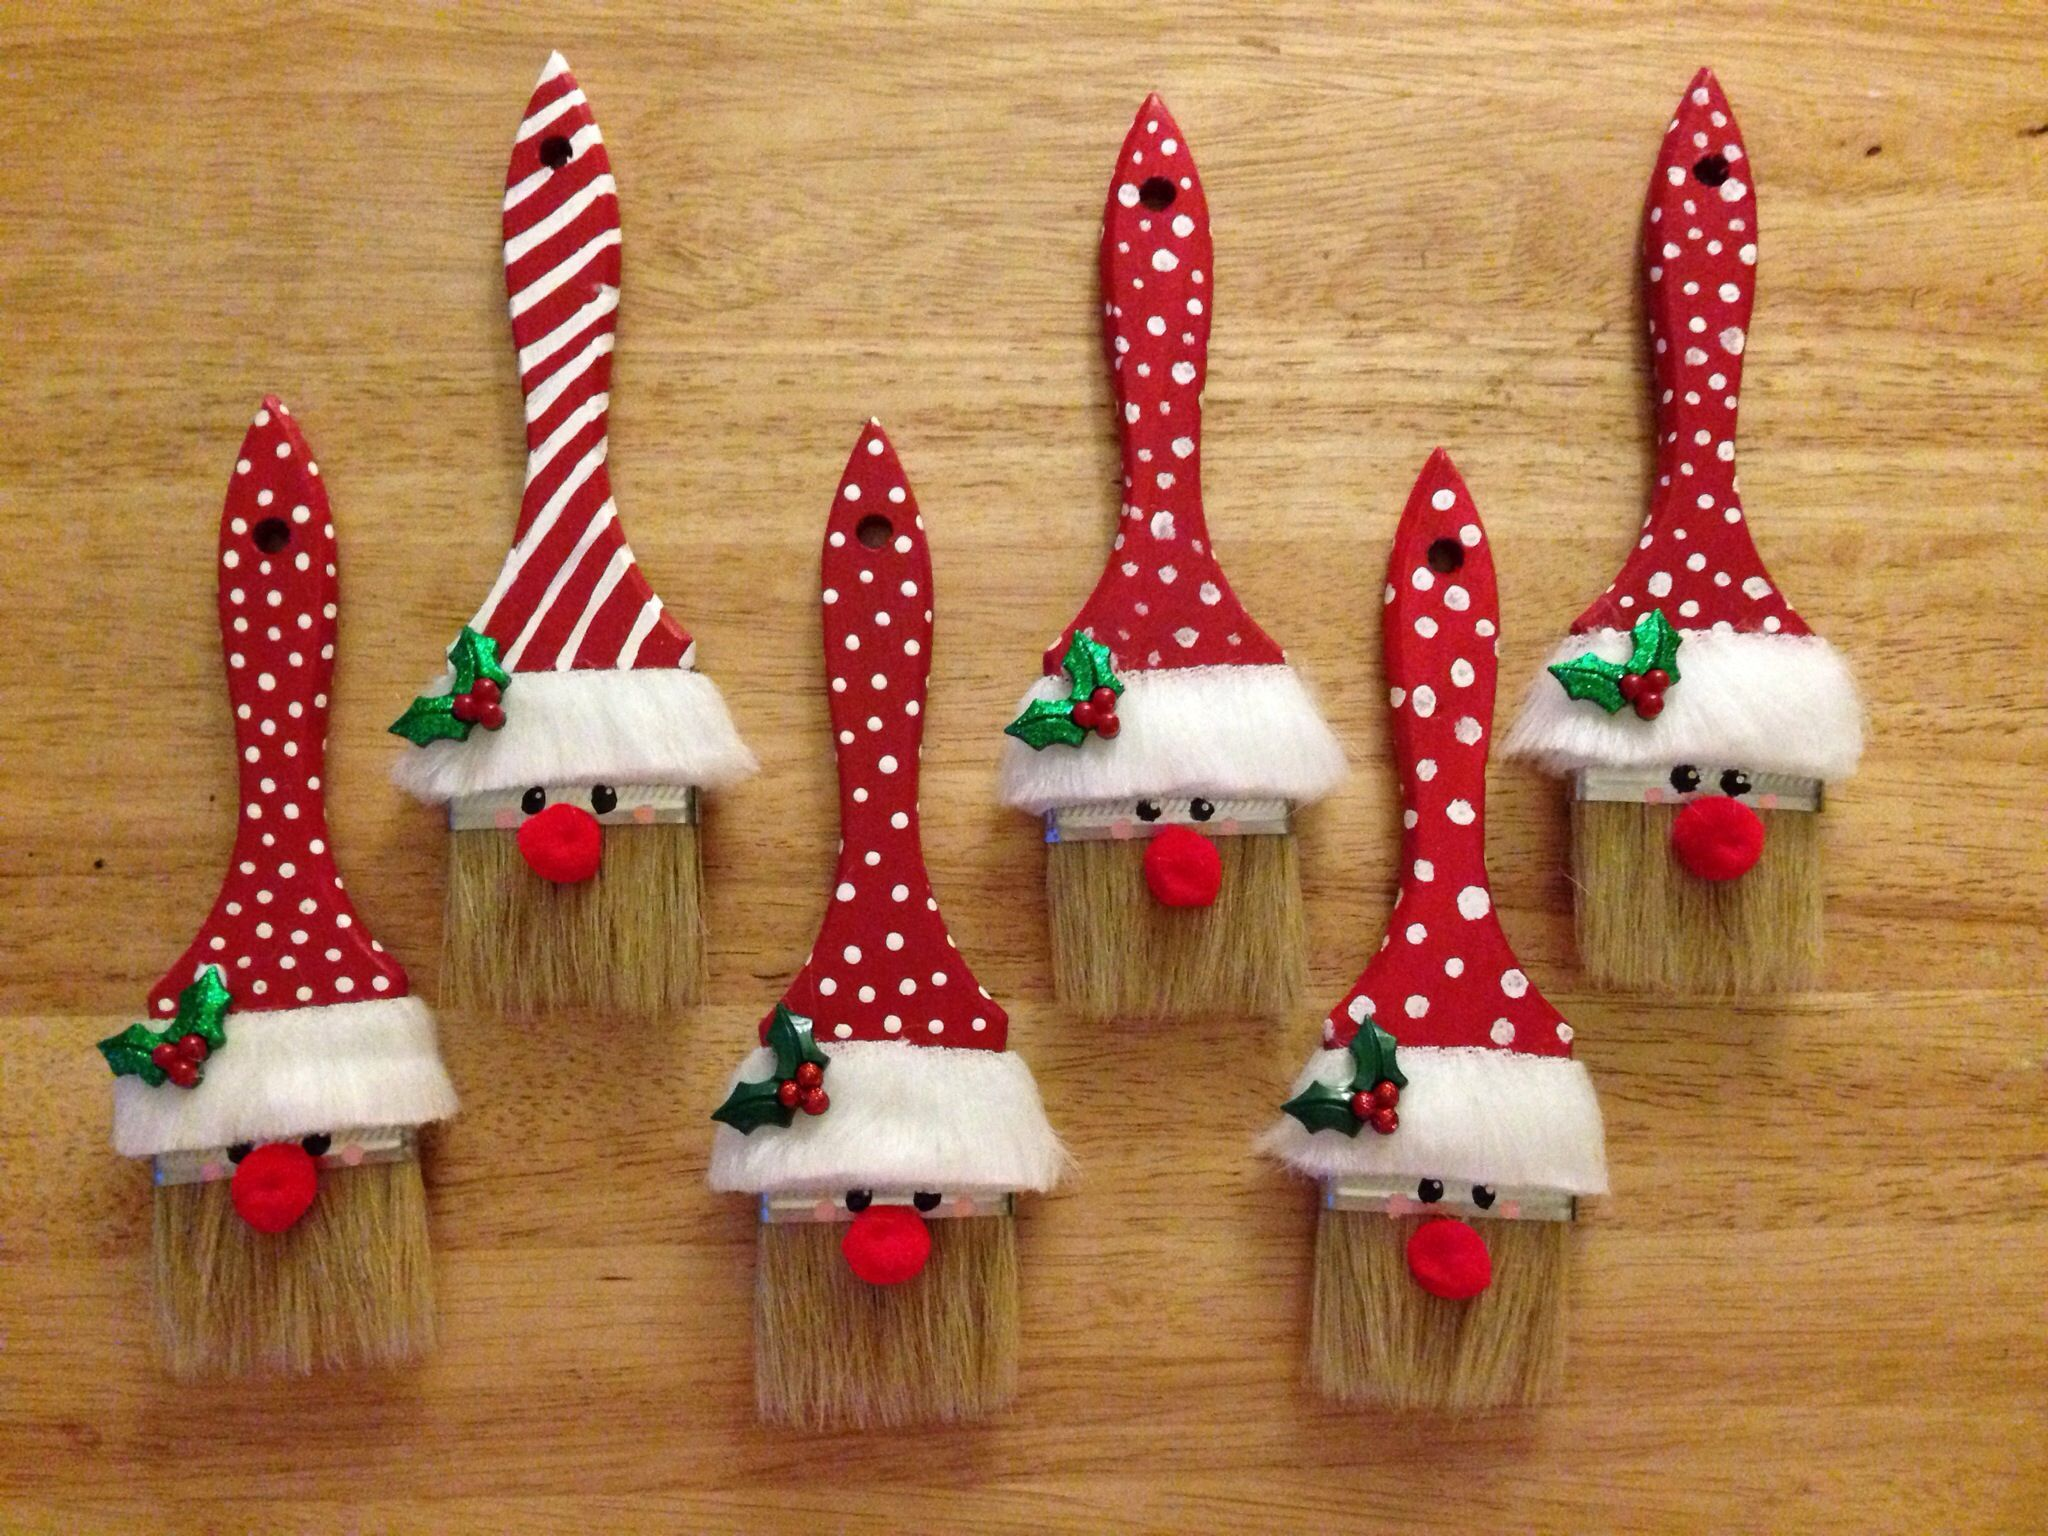 Paint brush elves. #trucsdenoël - tourism #decodenoelfaitmaison